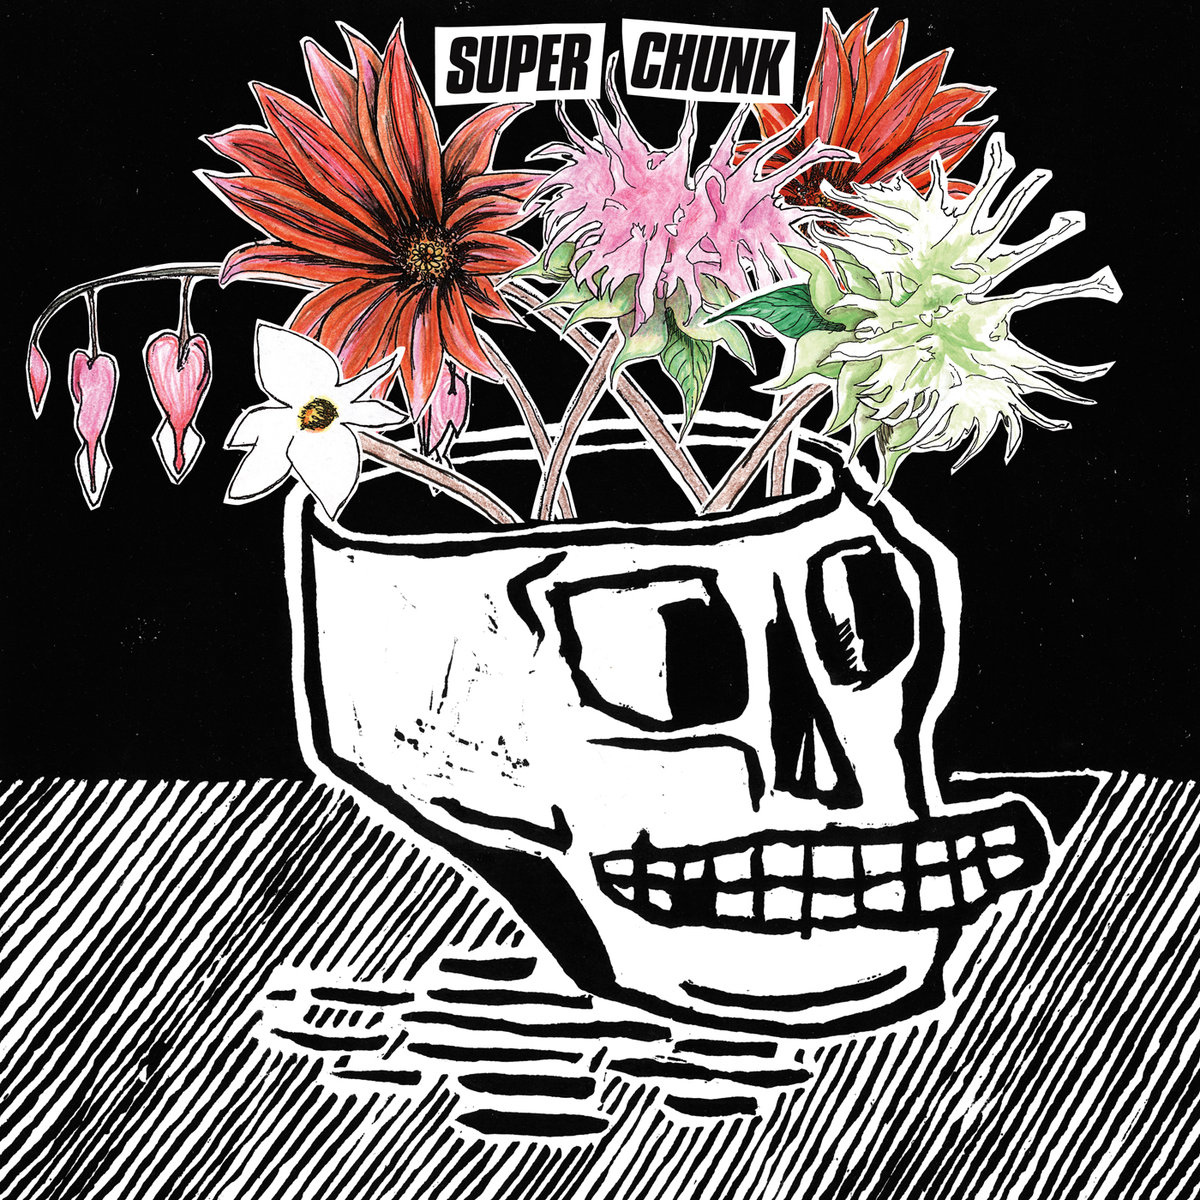 What A Time To Be Alive  Superchunk    LINKS   Official Site   Bandcamp   Twitter    LISTEN ON   Spotify   Apple Music